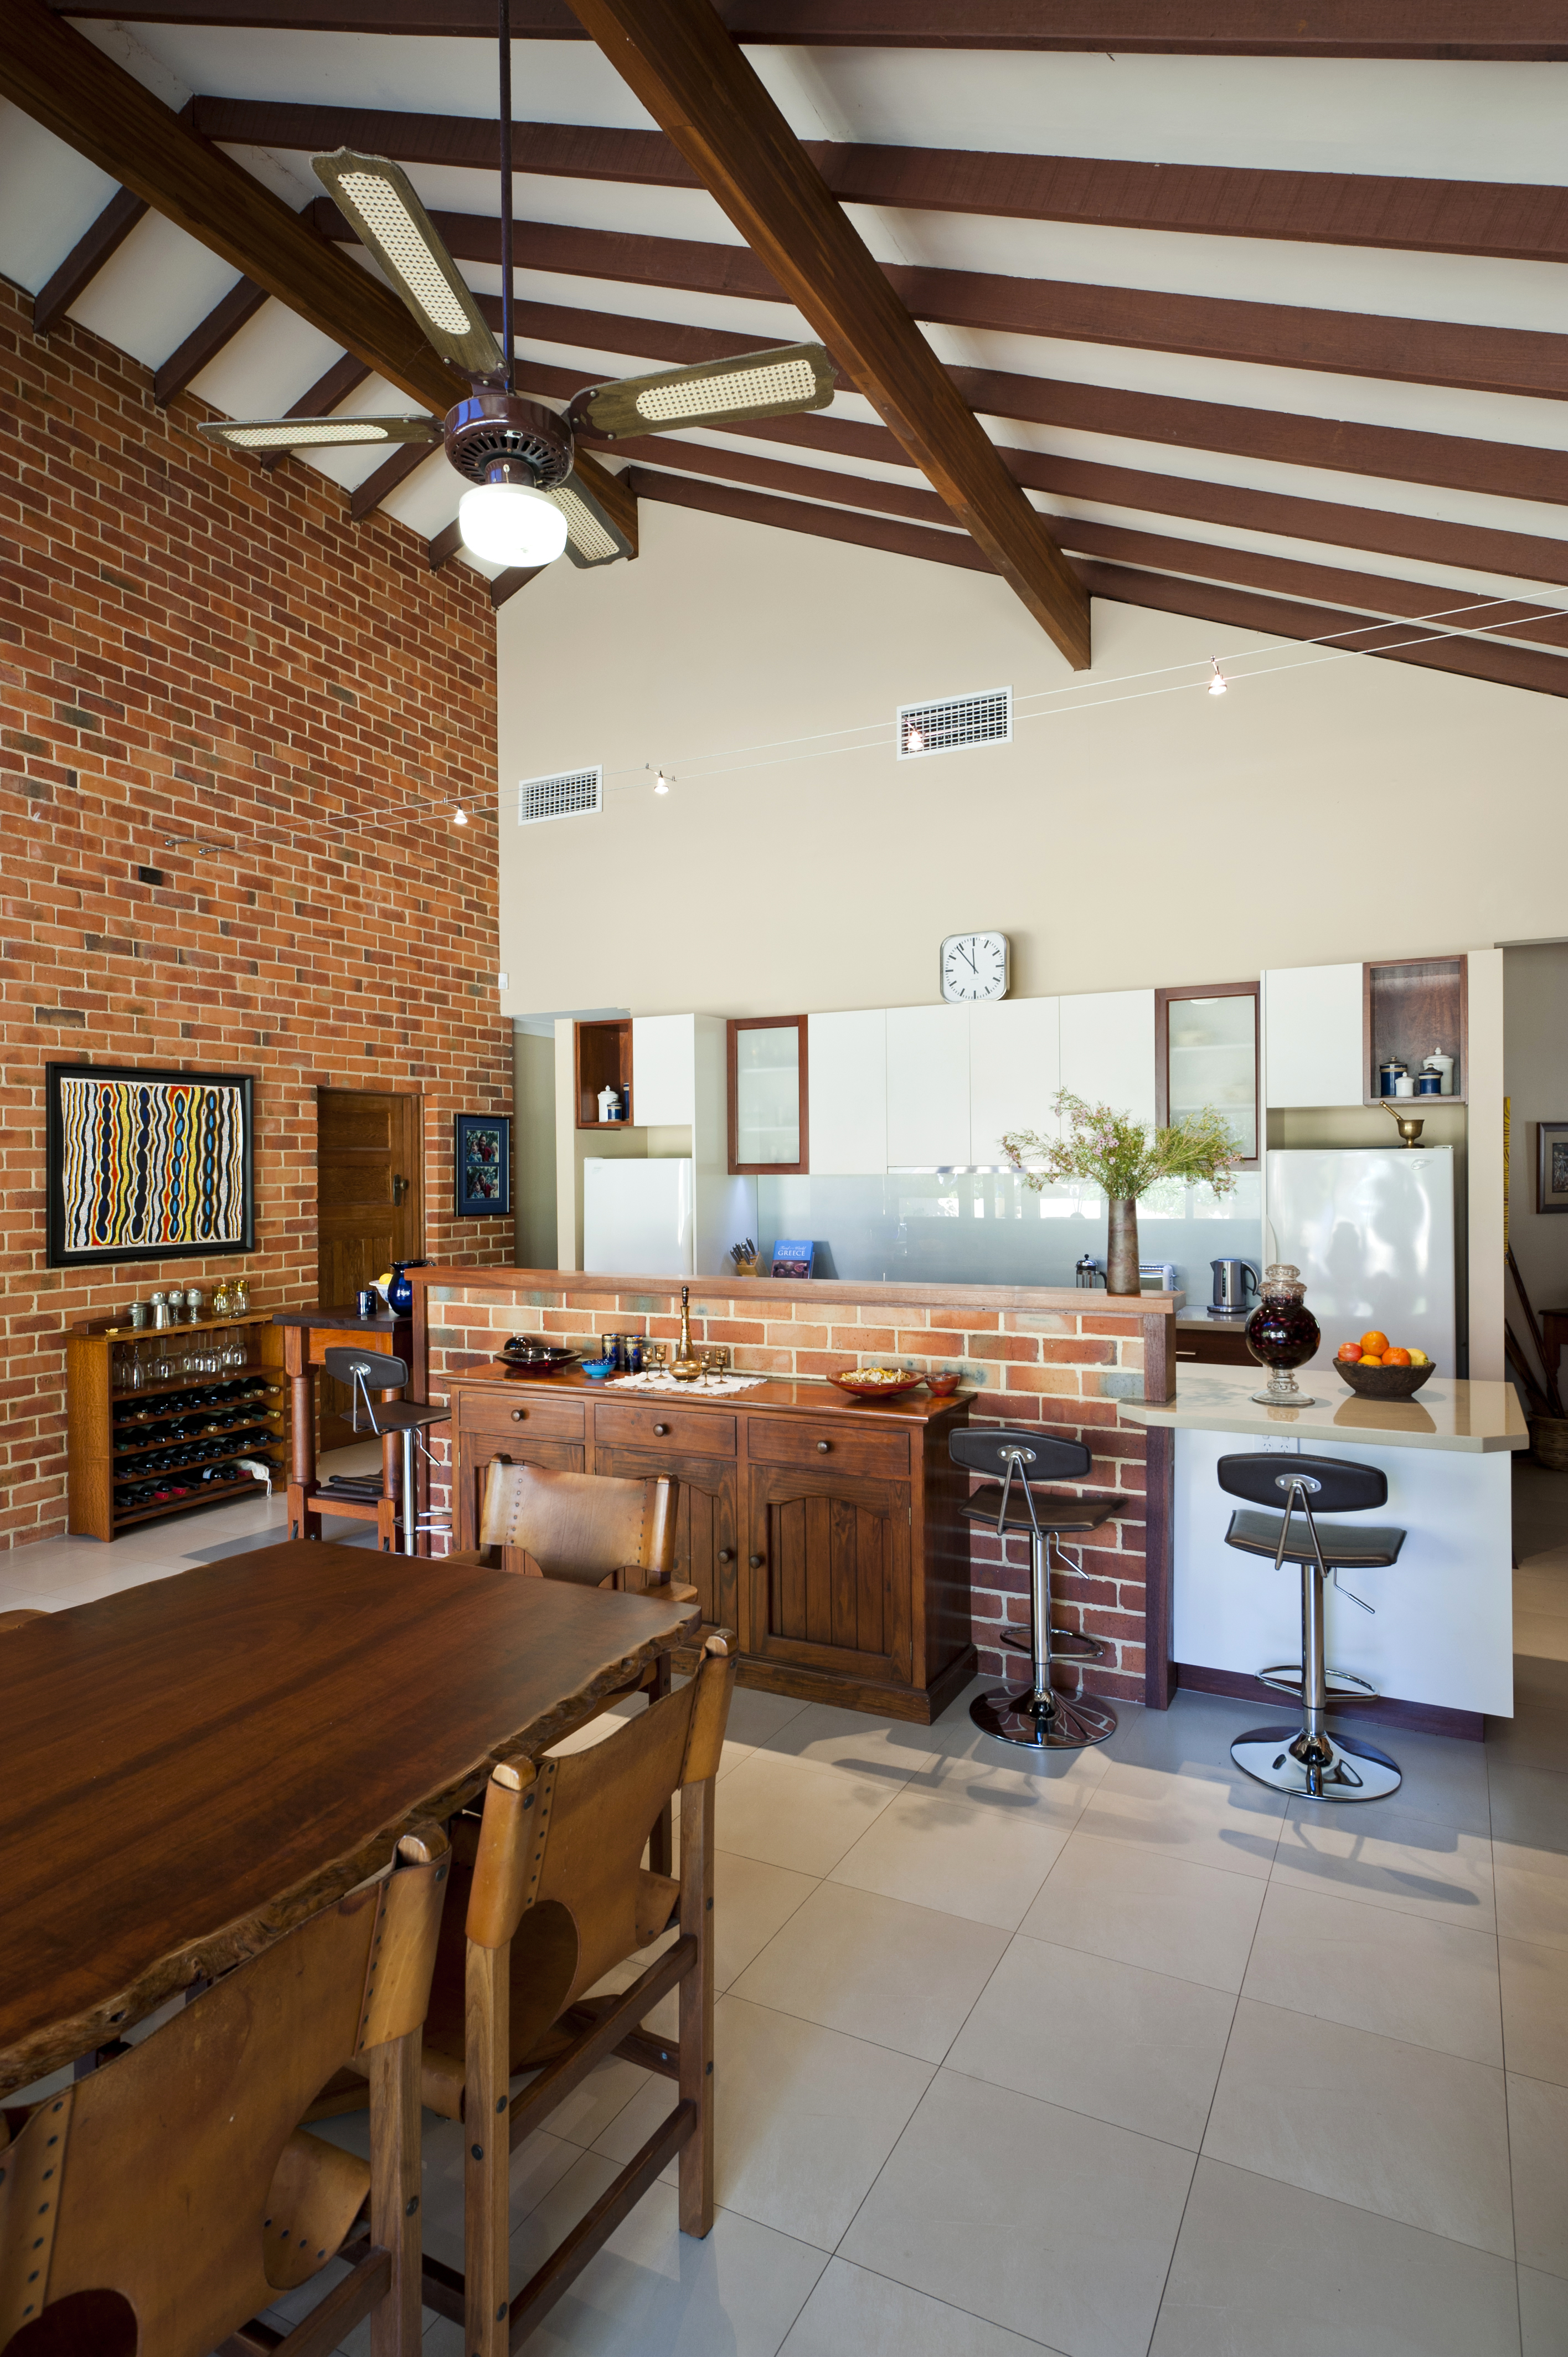 brick wall kitchen dining table high ceilings